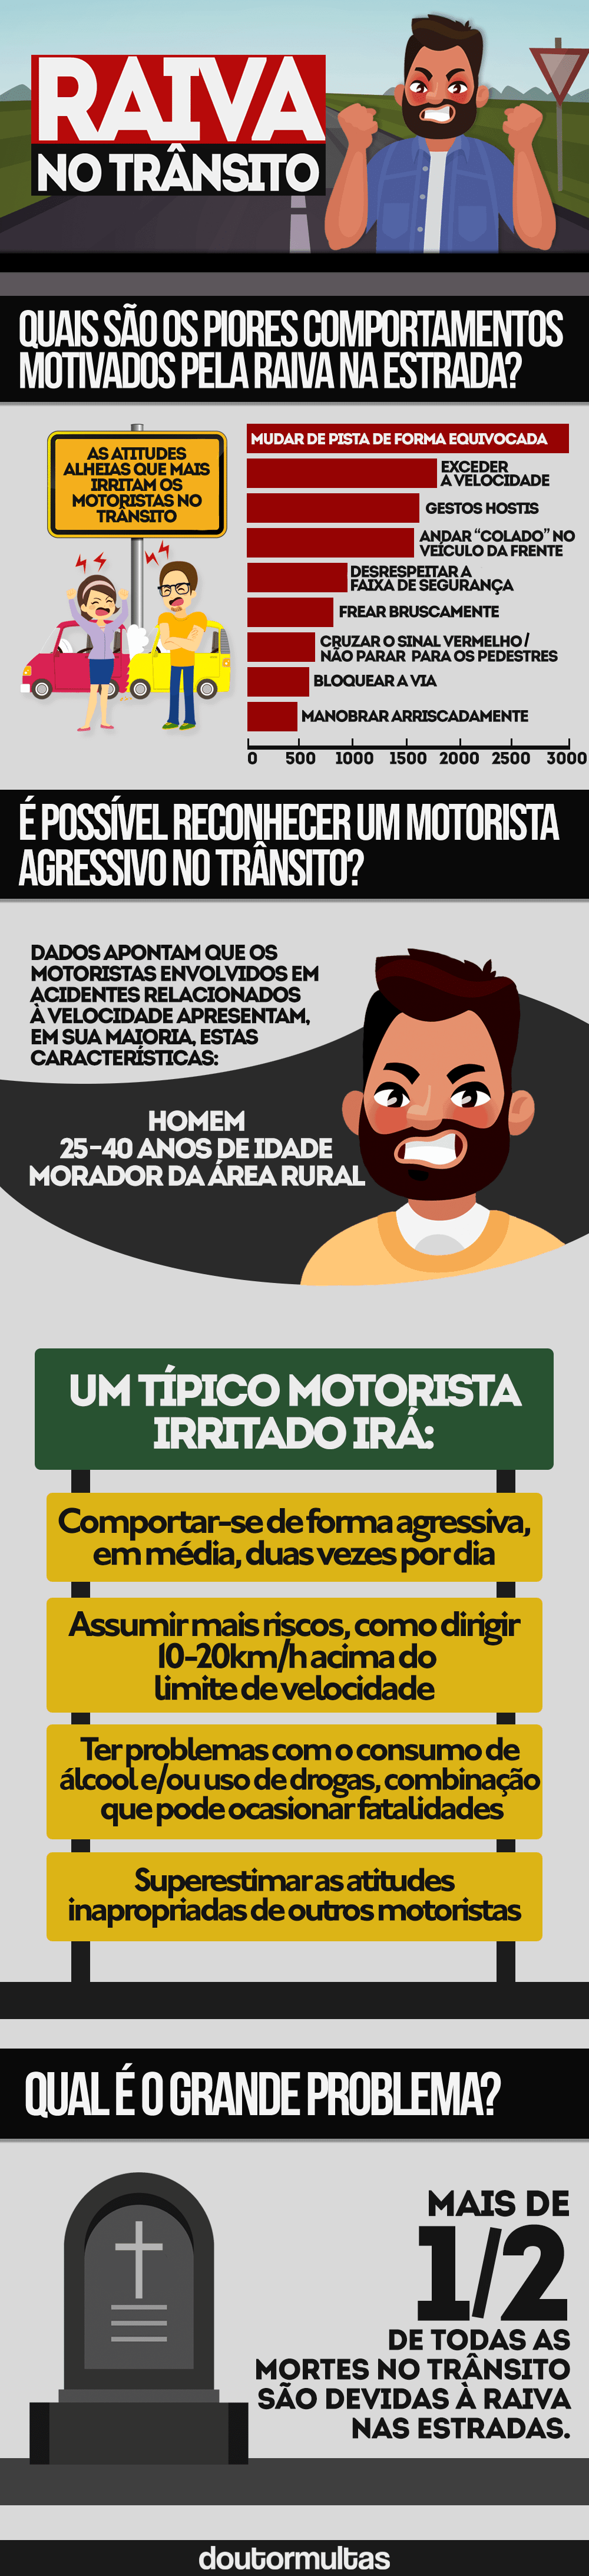 comportamento no transito raiva no trânsito